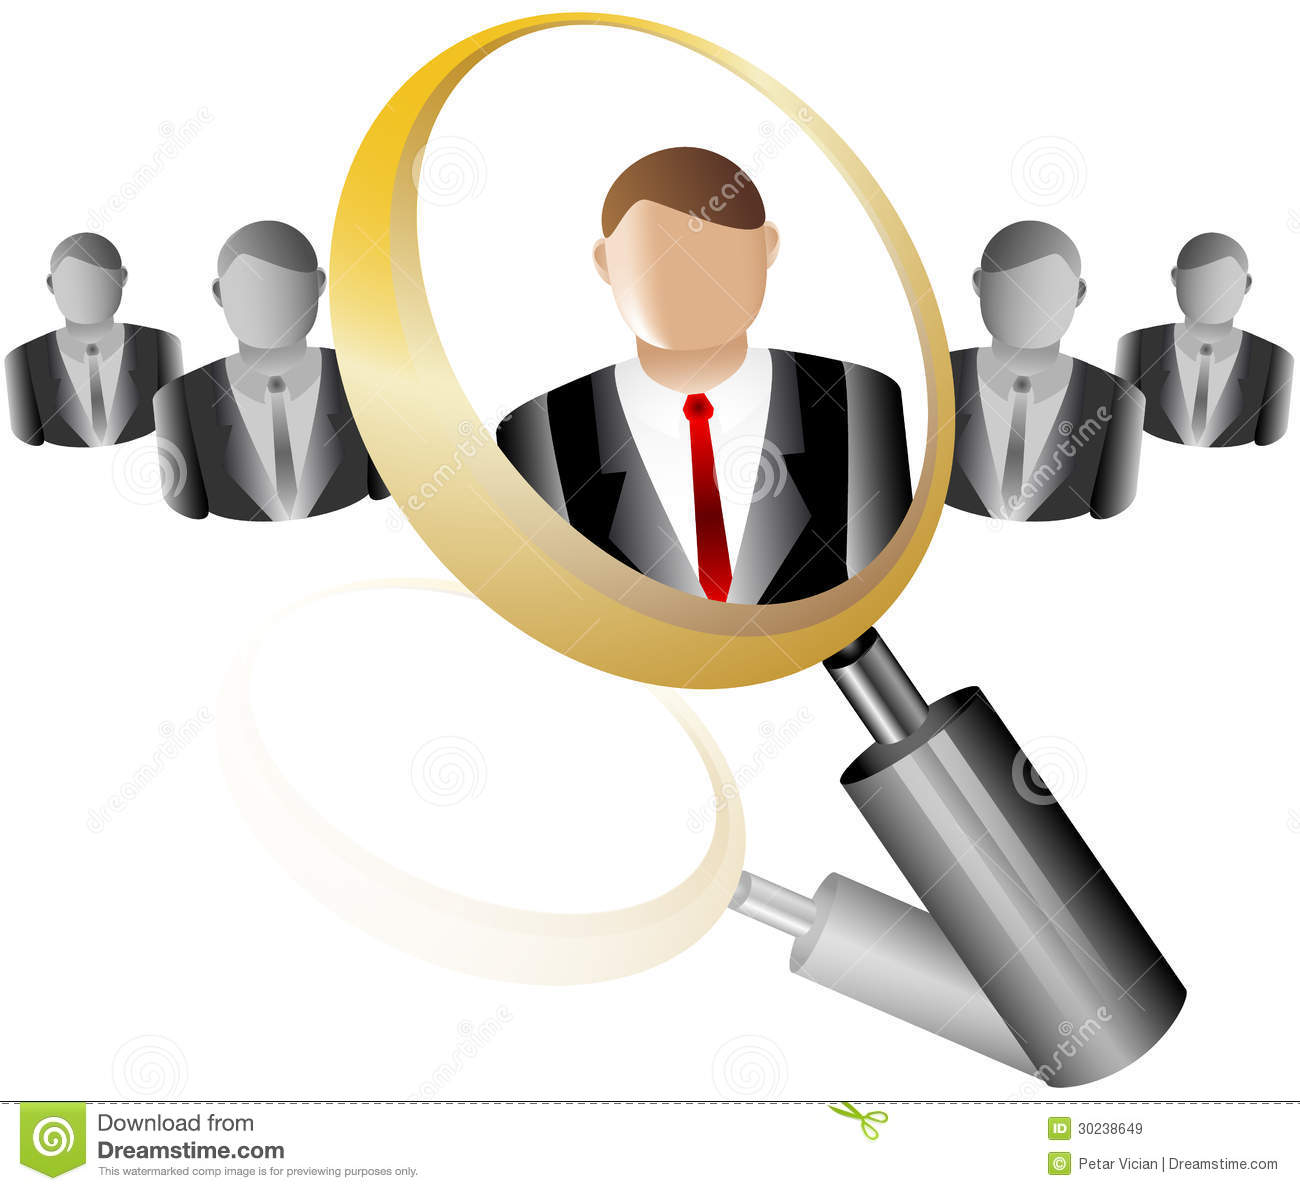 Search employee icon for recruitment agency magnif royalty for Bureau recruitment